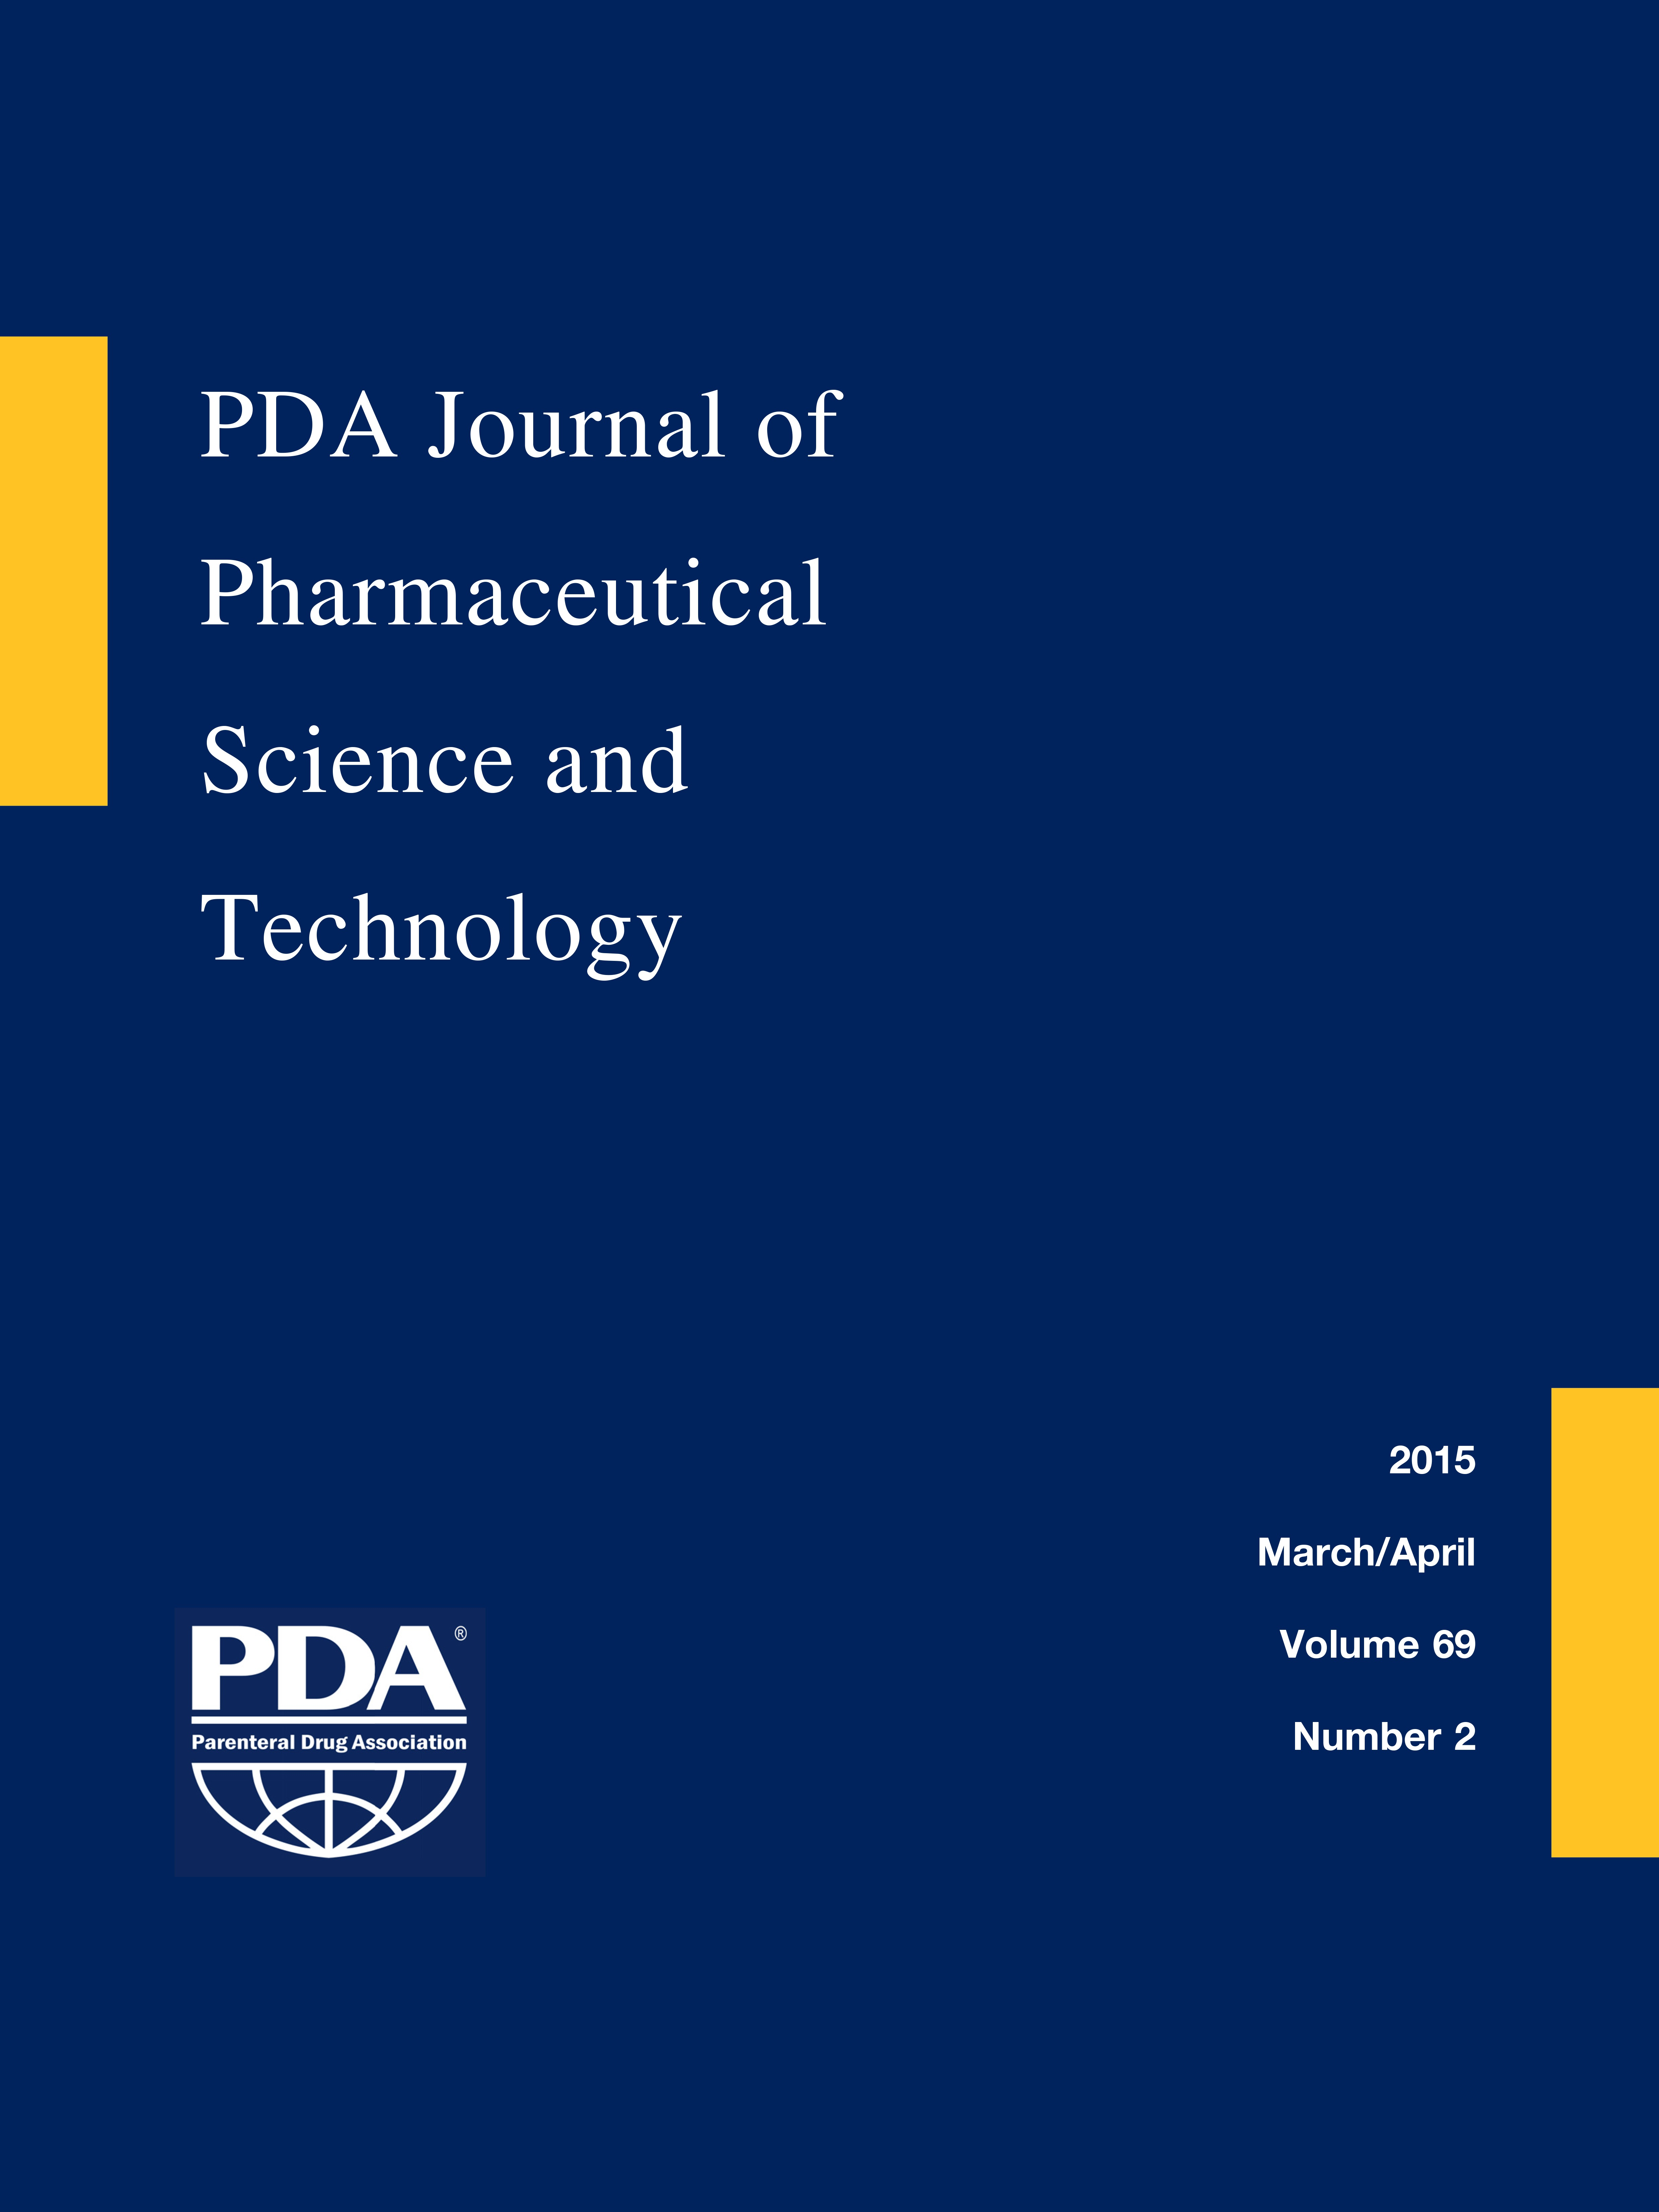 Utilization Of The Tyndall Effect For Enhanced Visual Detection Of Particles In Compatibility Testing Of Intravenous Fluids Validity And Reliability Pda Journal Of Pharmaceutical Science And Technology